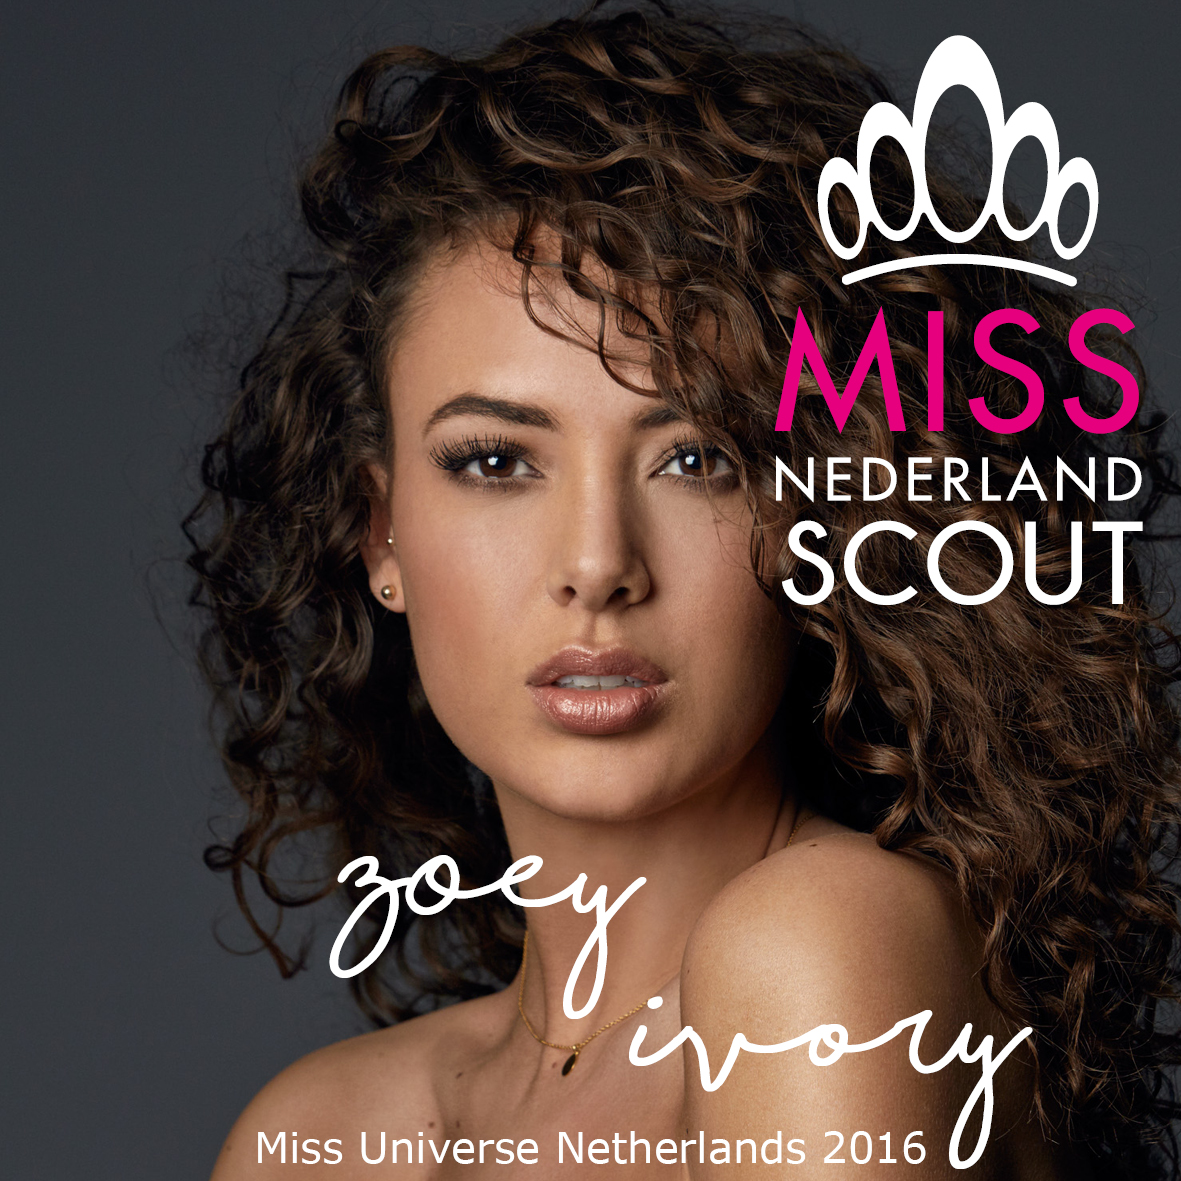 Zoey ivory Miss Nederland Scout 2017 3